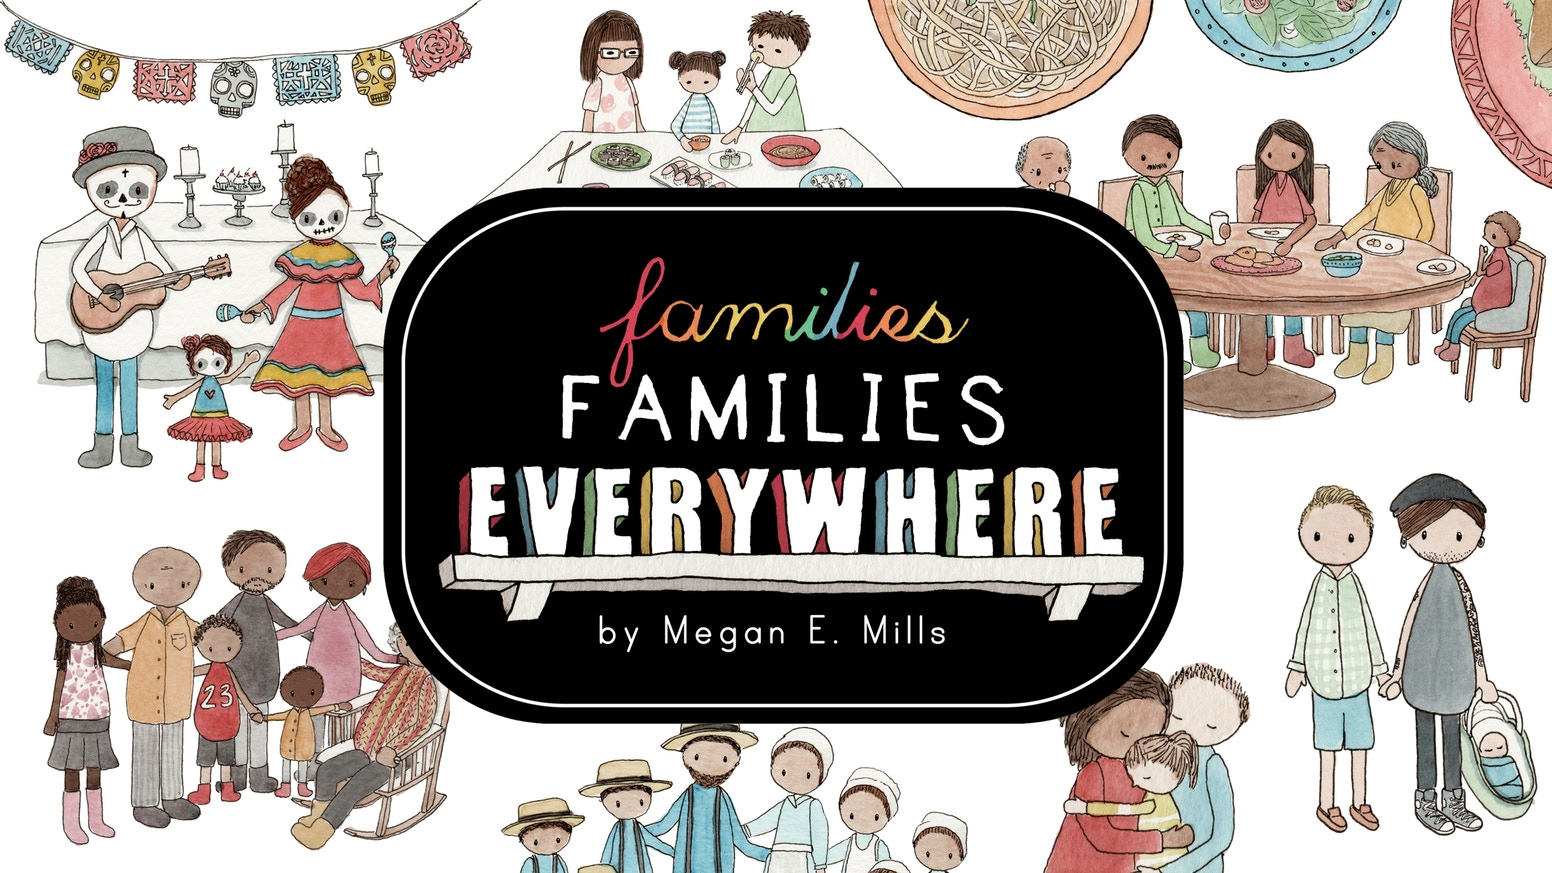 An illustrated picture book about families of all kinds! With a focus on embracing diversity and touching on a variety of topics.